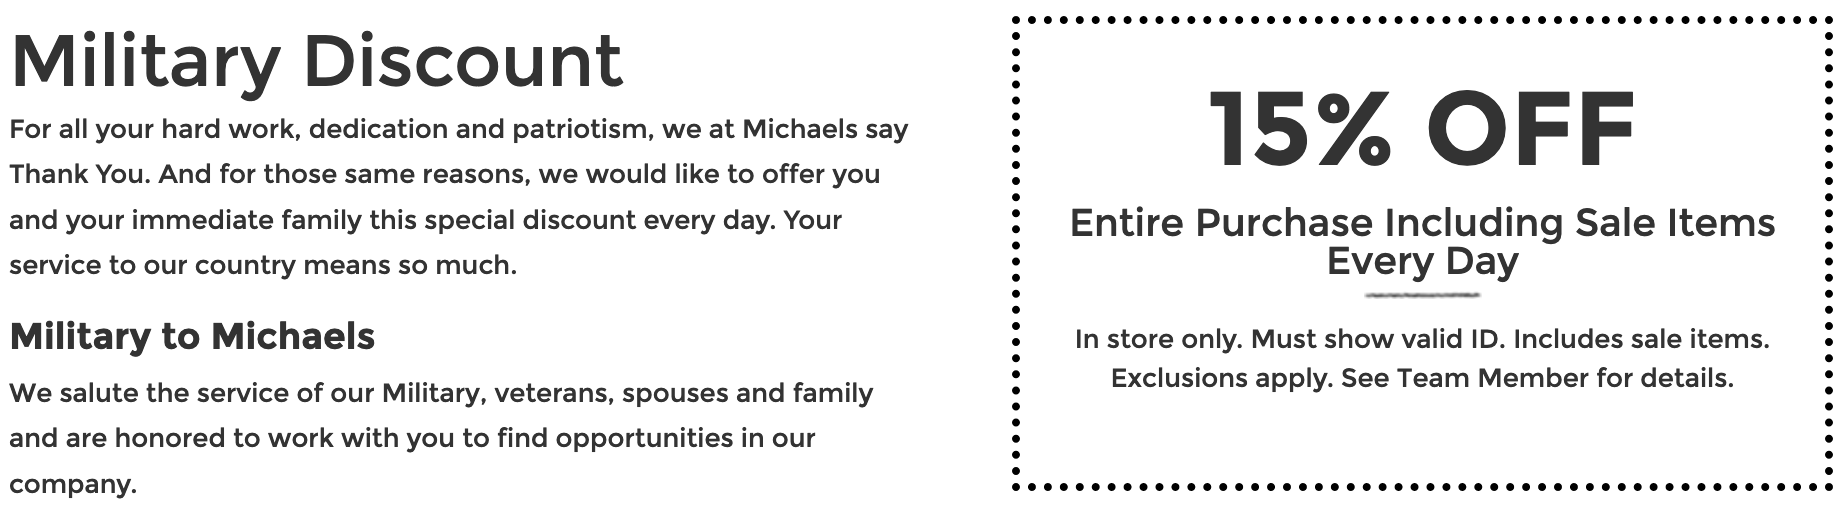 Michaels Military Veteran Discounts